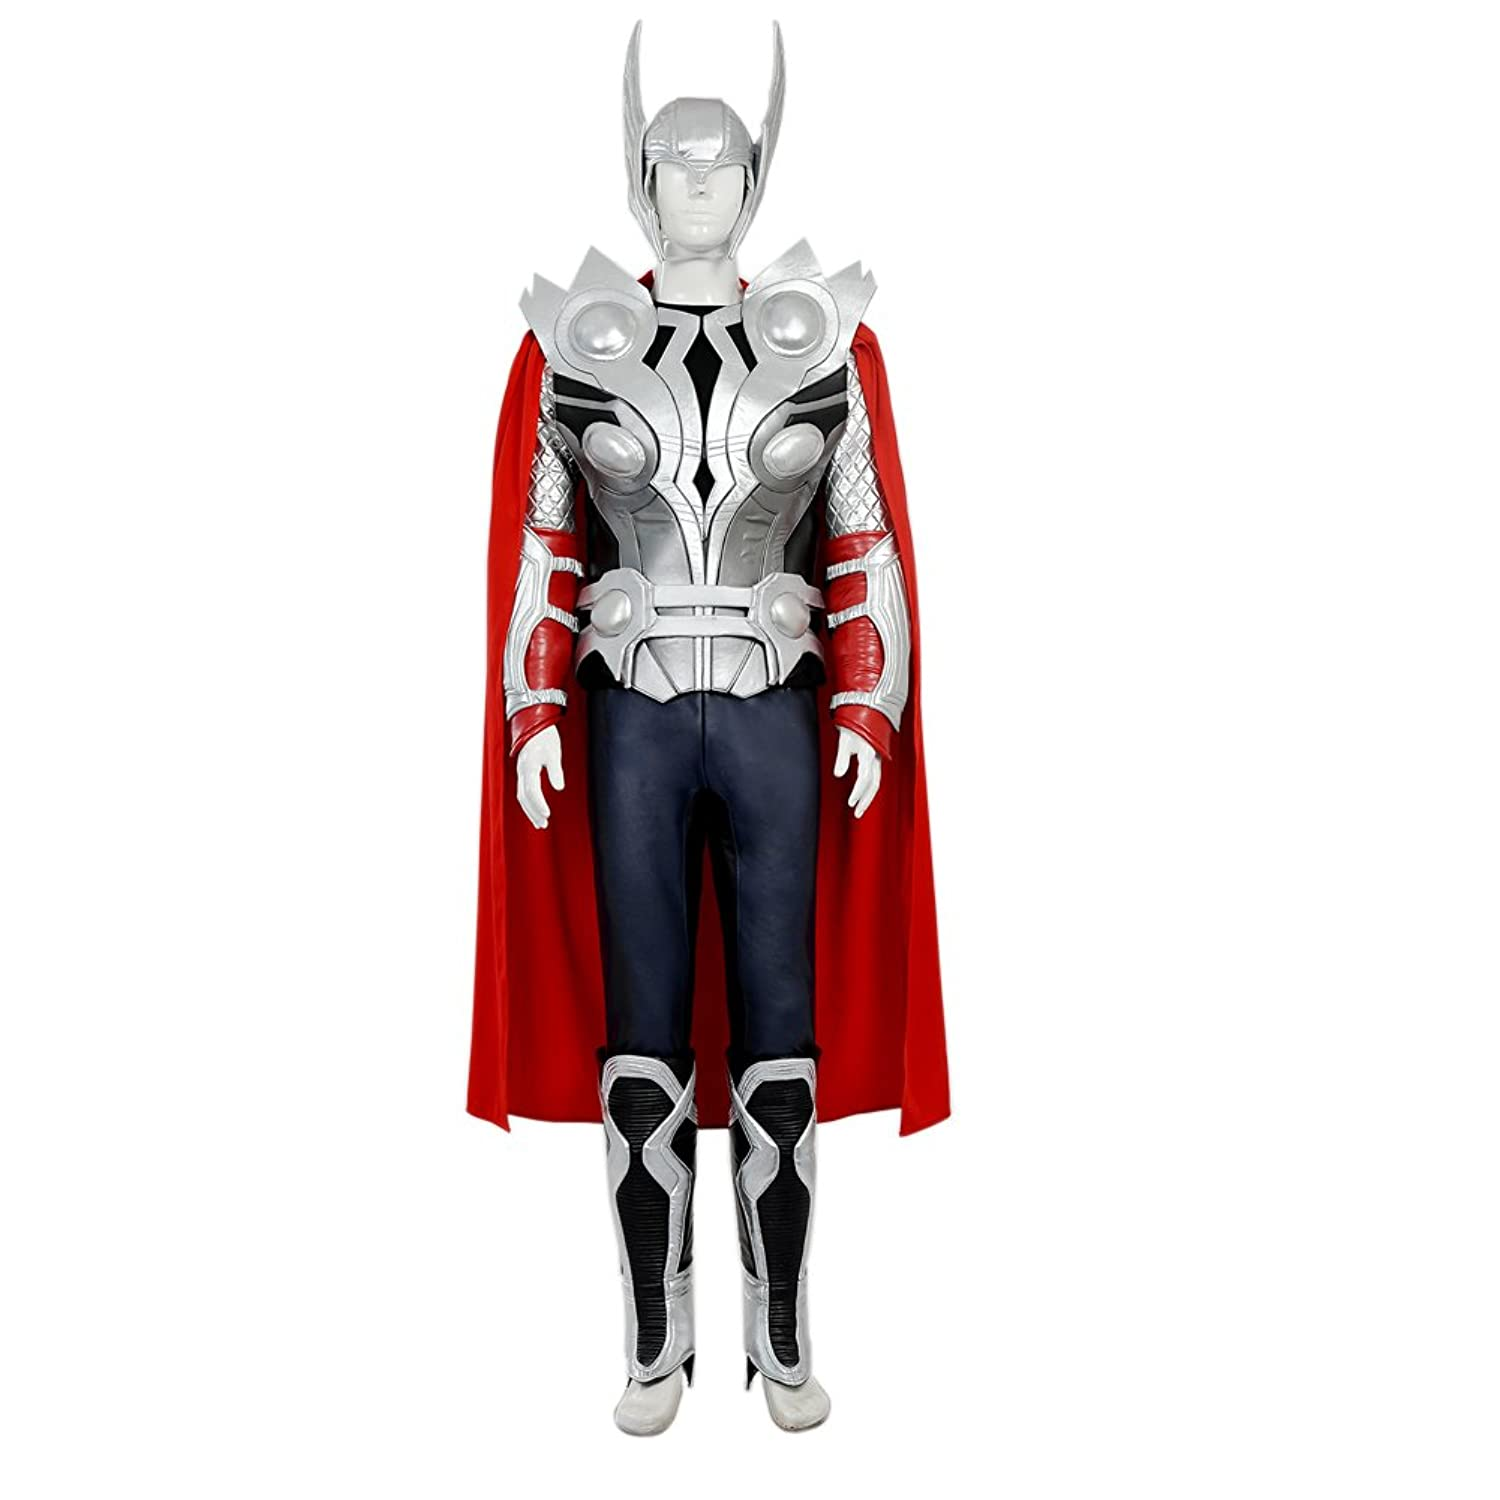 Mens Avengers Age of Ultron Thor Cosplay Deluxe Costume Outfit